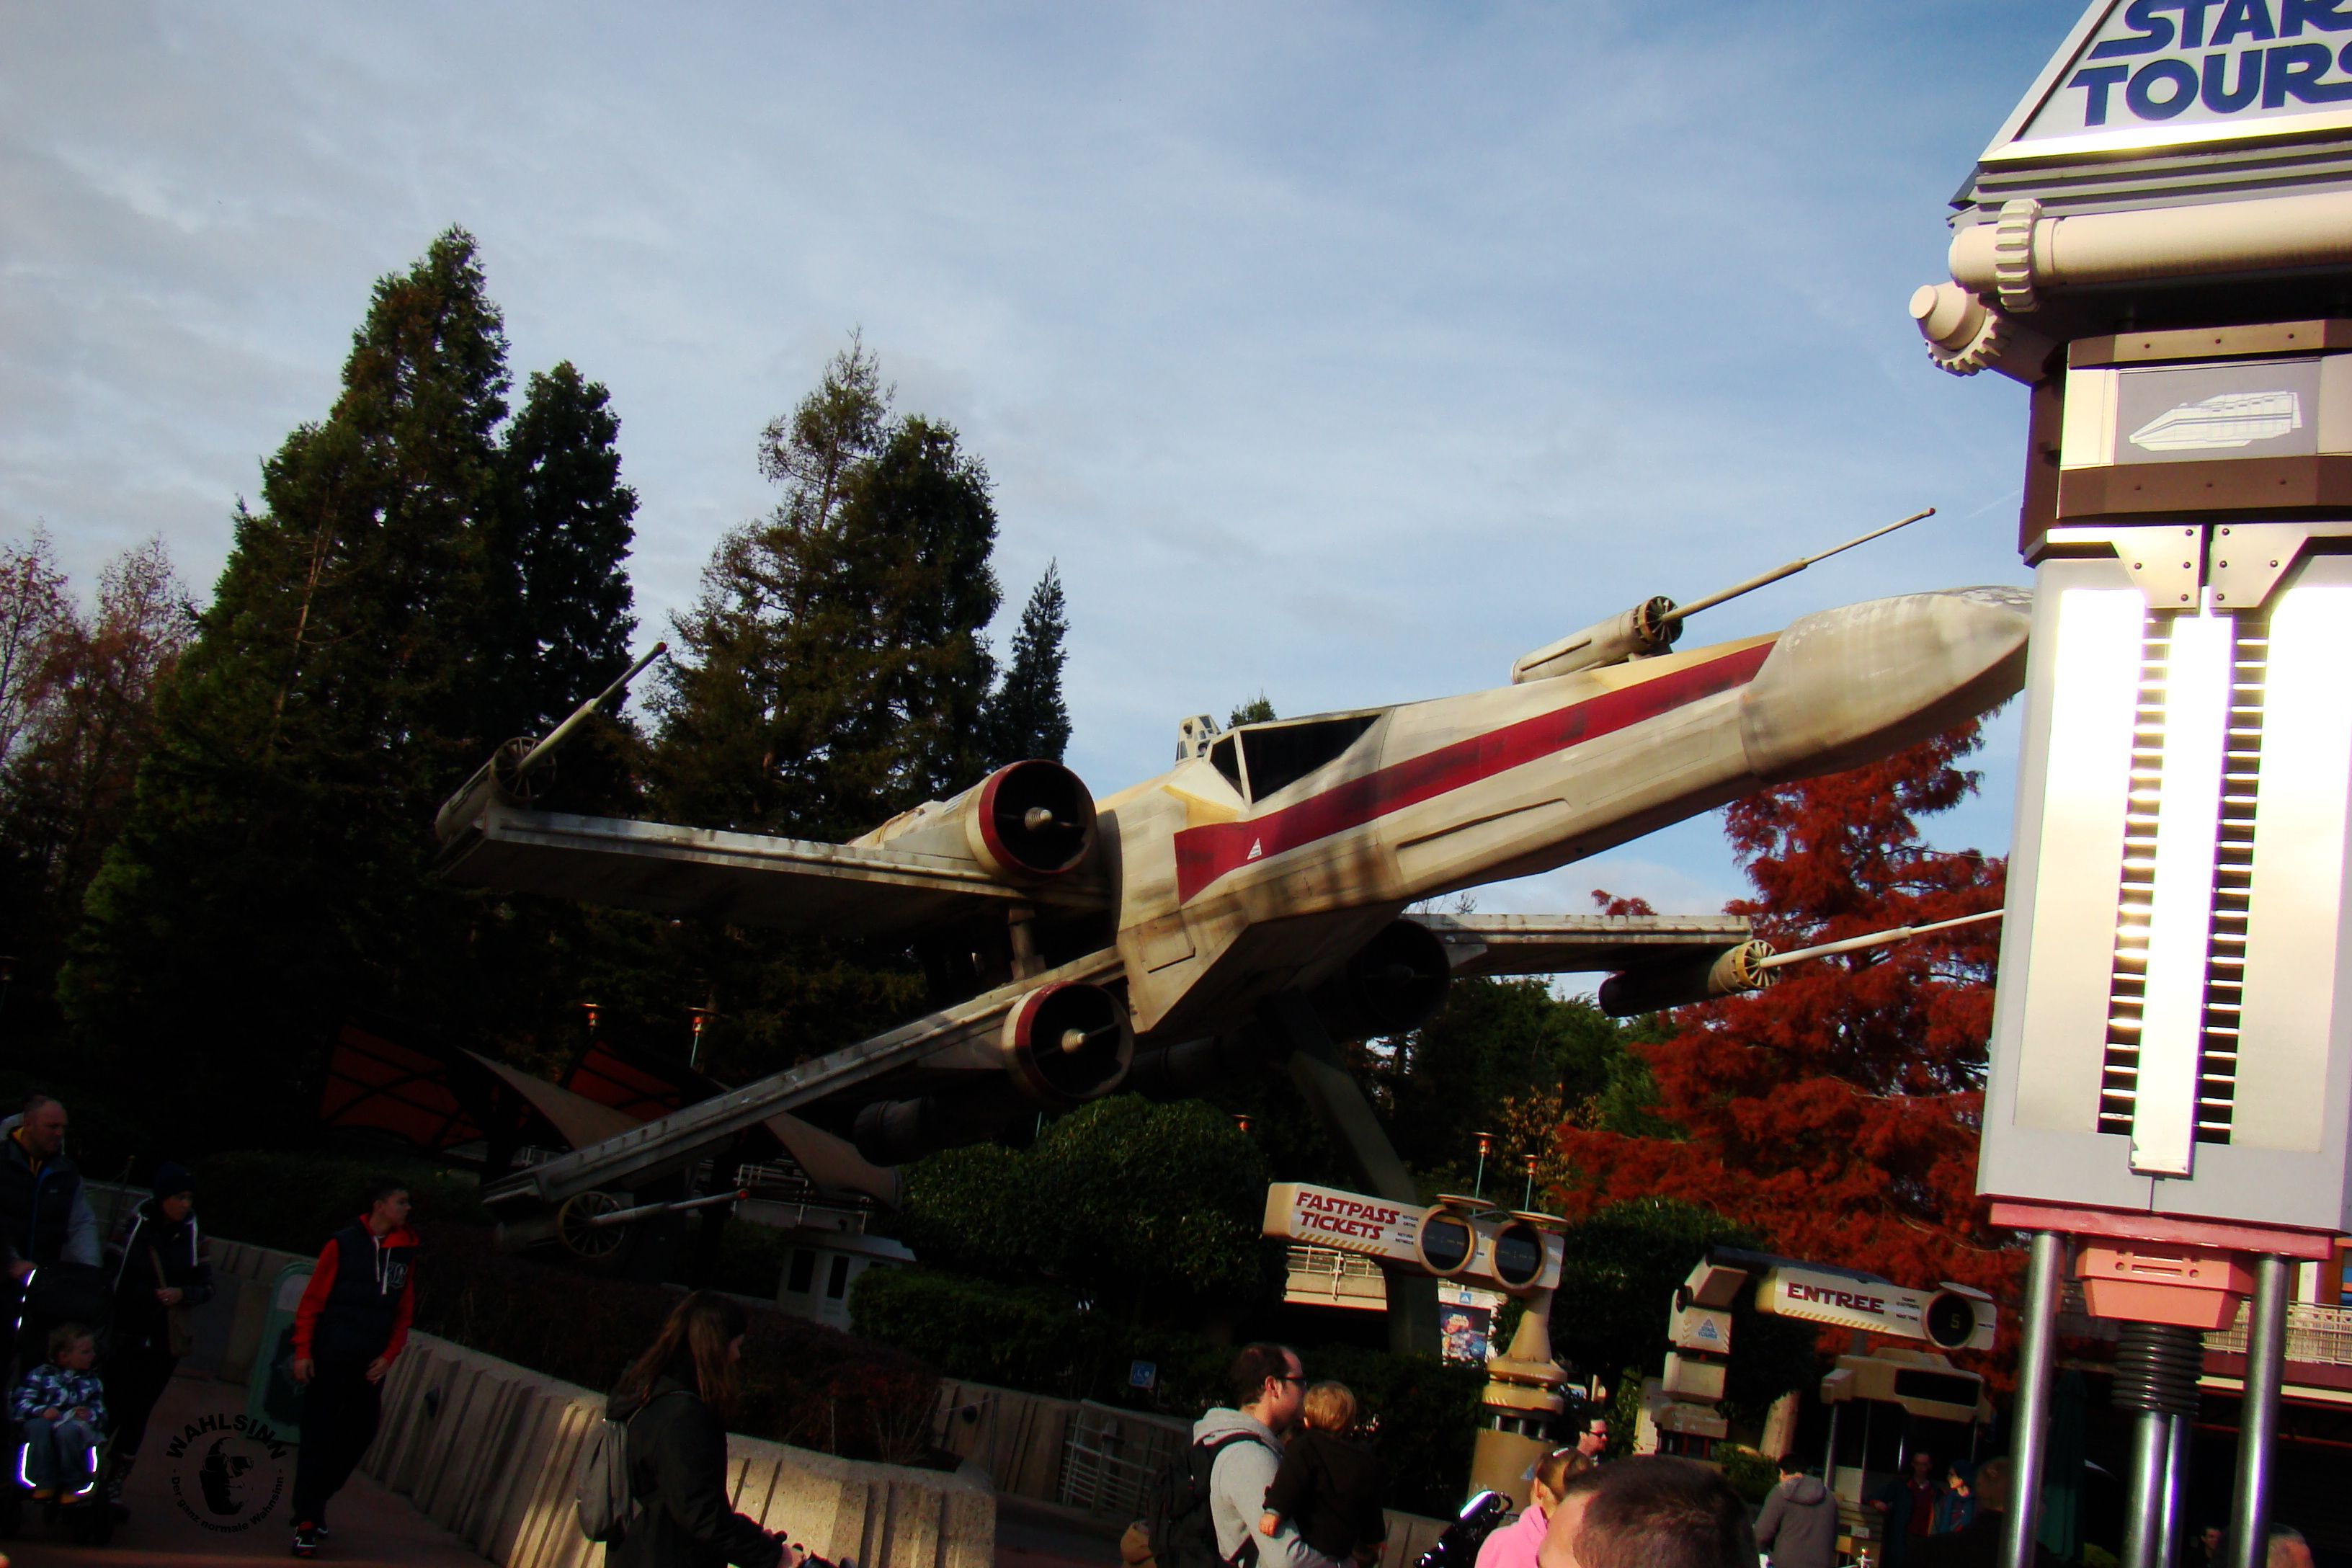 Disneyland Paris - Star Tours / Star Wars